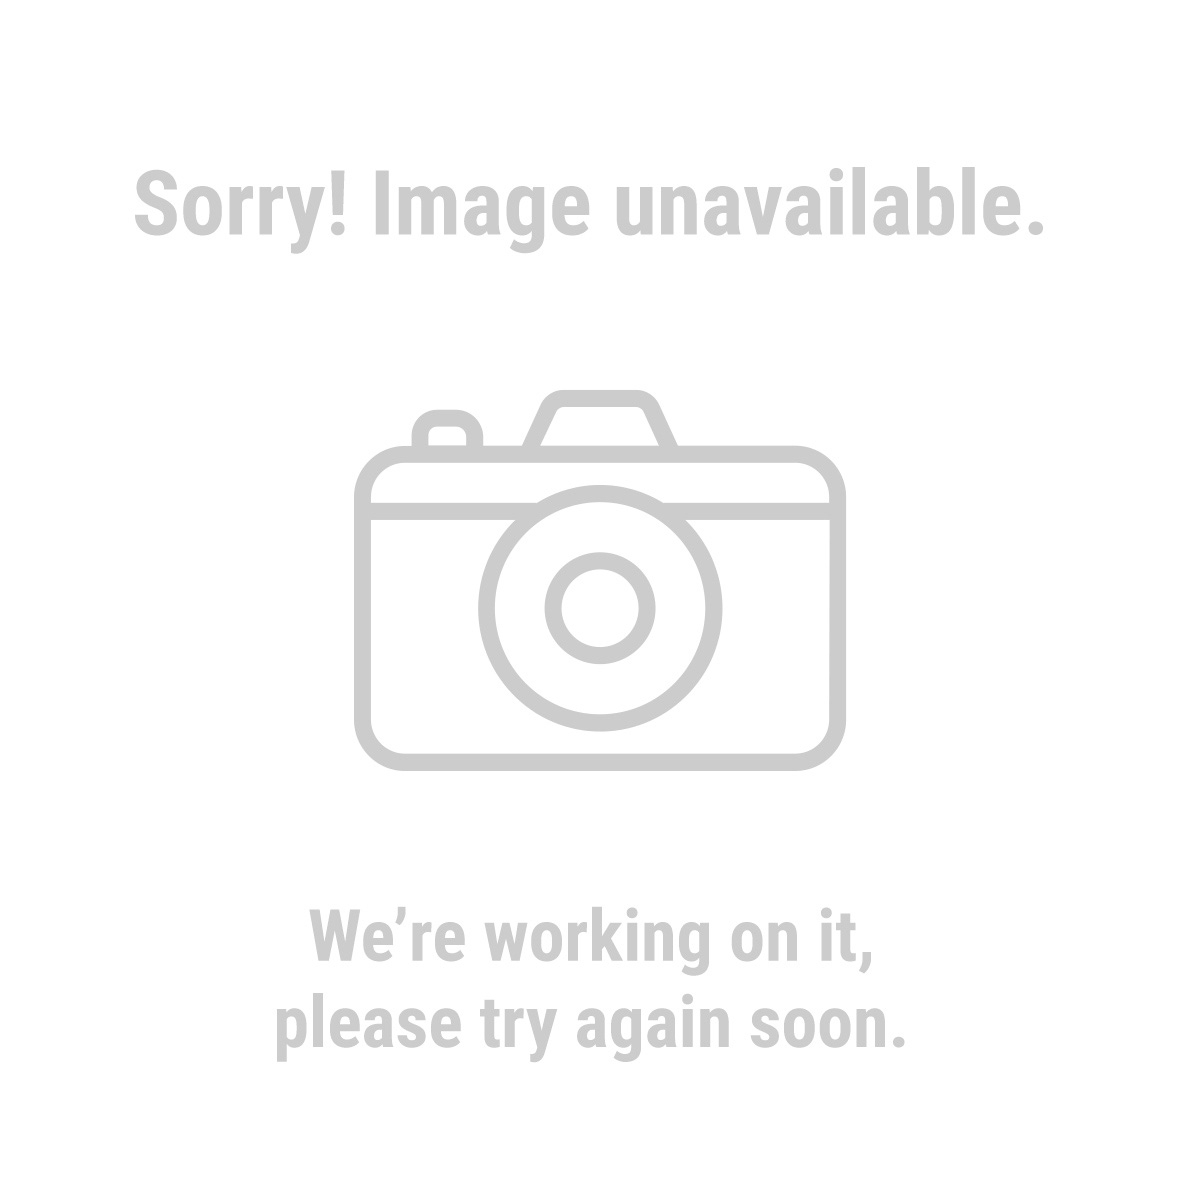 "97240 Pack of 5 9"" Disposable Paint Tray Liners"